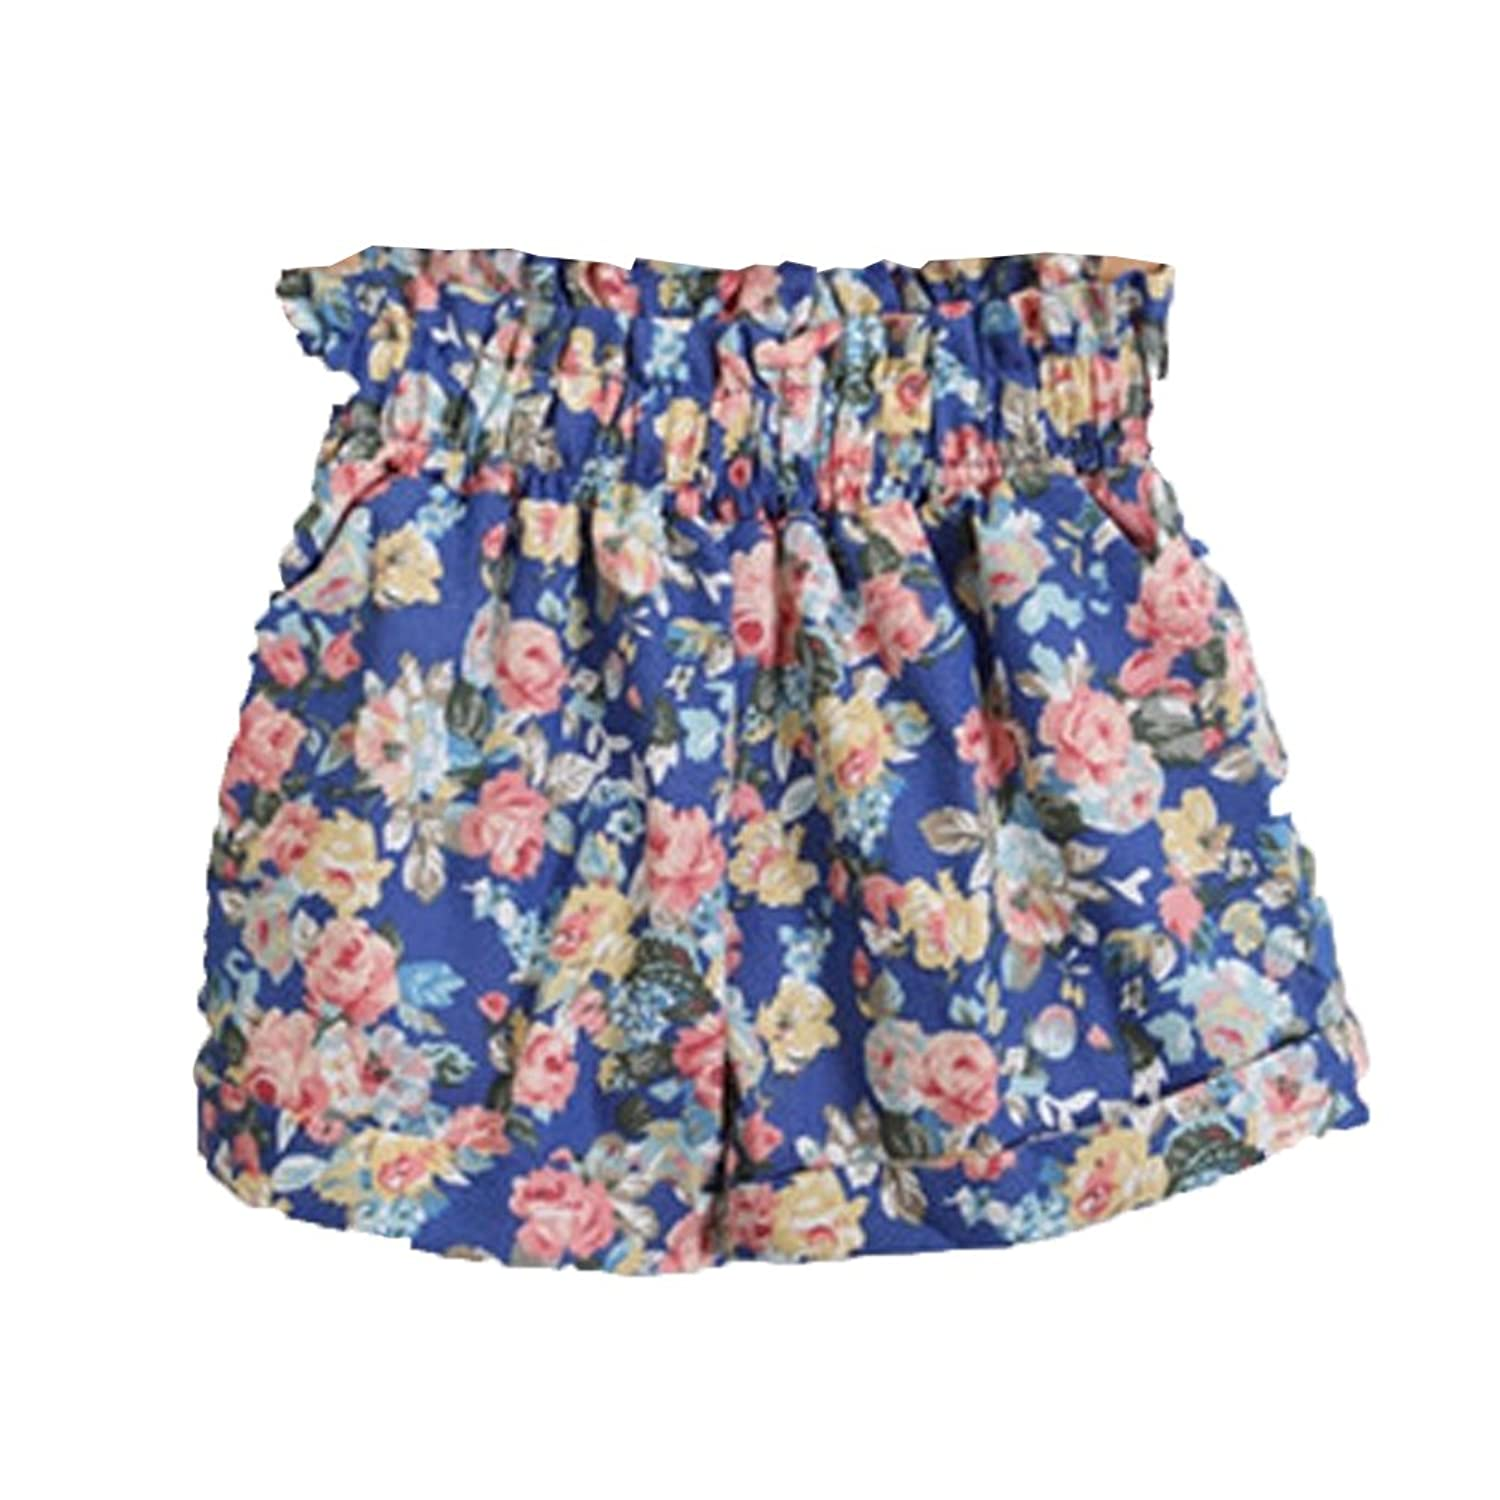 Deercon Women's Summer Casual Elastic Floral Shorts Beachwear(6 colors)